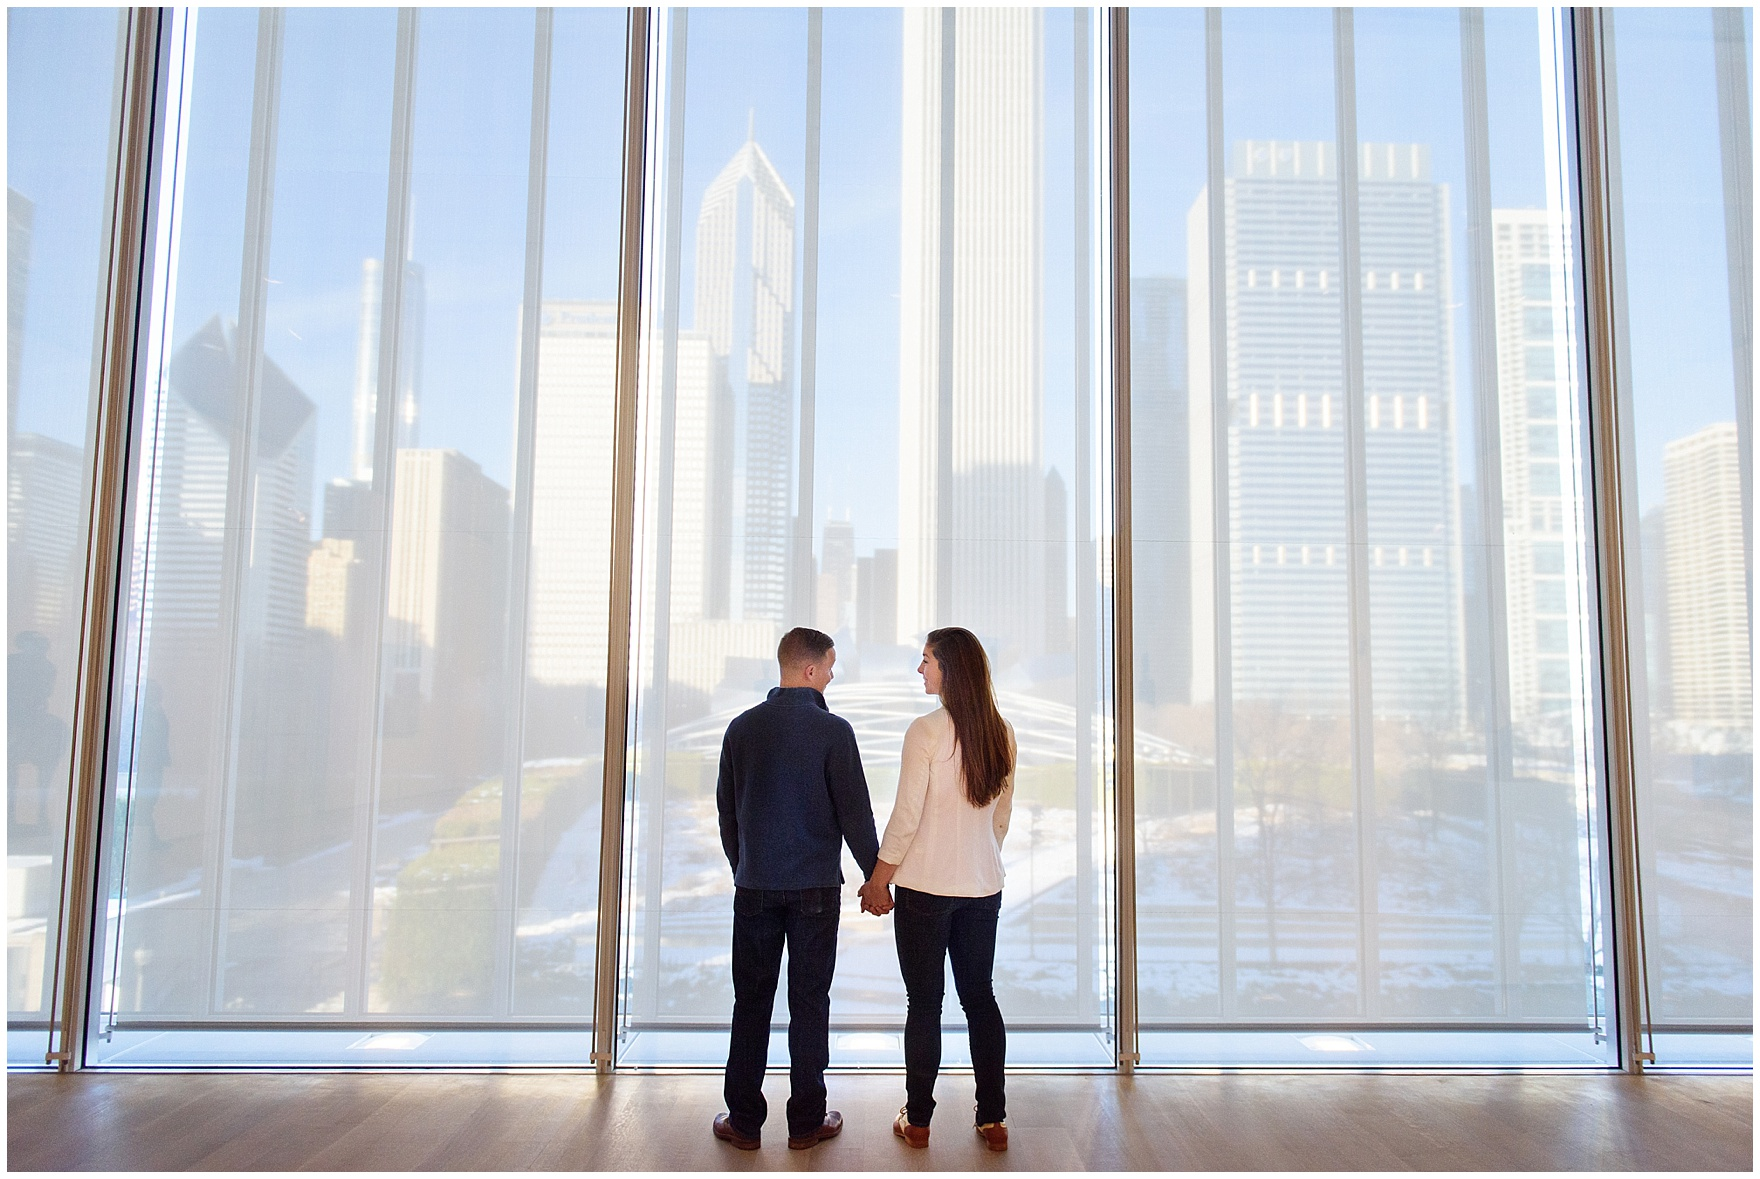 A couple stands in front of the windows of the Modern Wing during an Art Institute of Chicago engagement photography session.